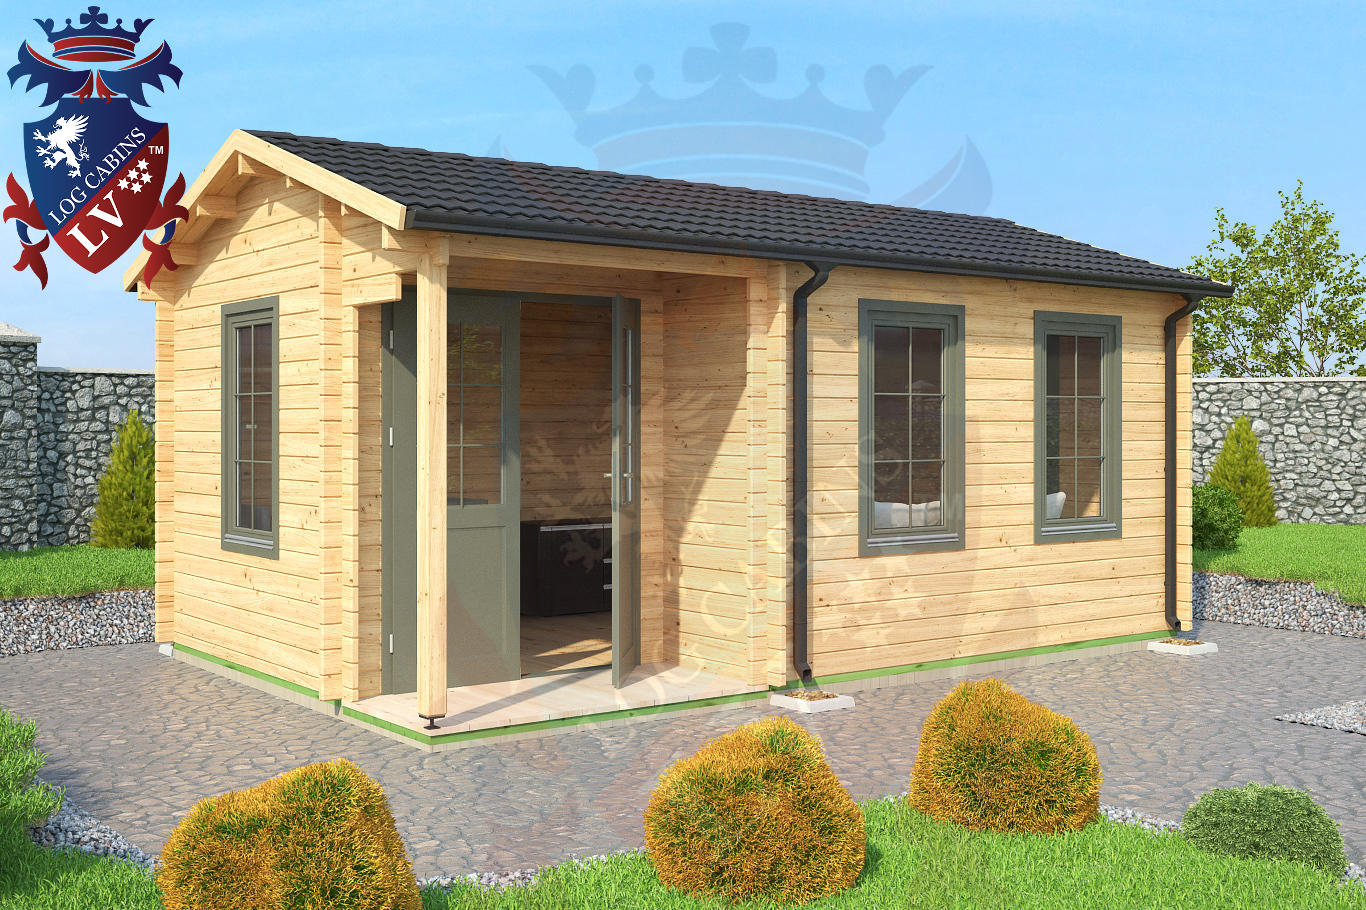 Deluxe Garden Office Log Cabin 5.5m x 3.5m